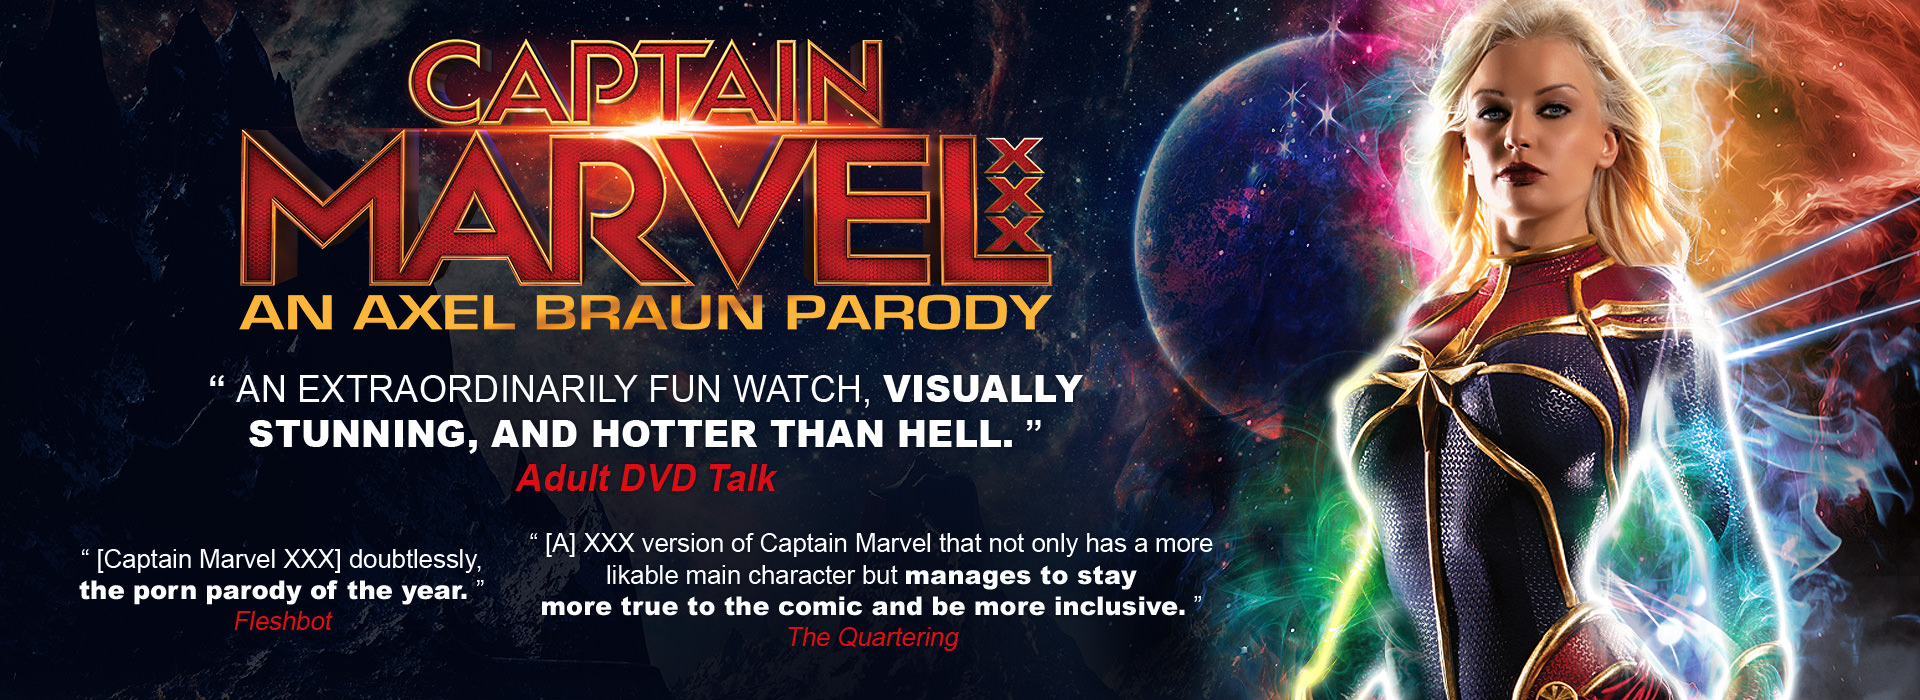 https://trailers-fame.gammacdn.com/wicked/Wicked-Captain-Marvel-Banner-2.mp4